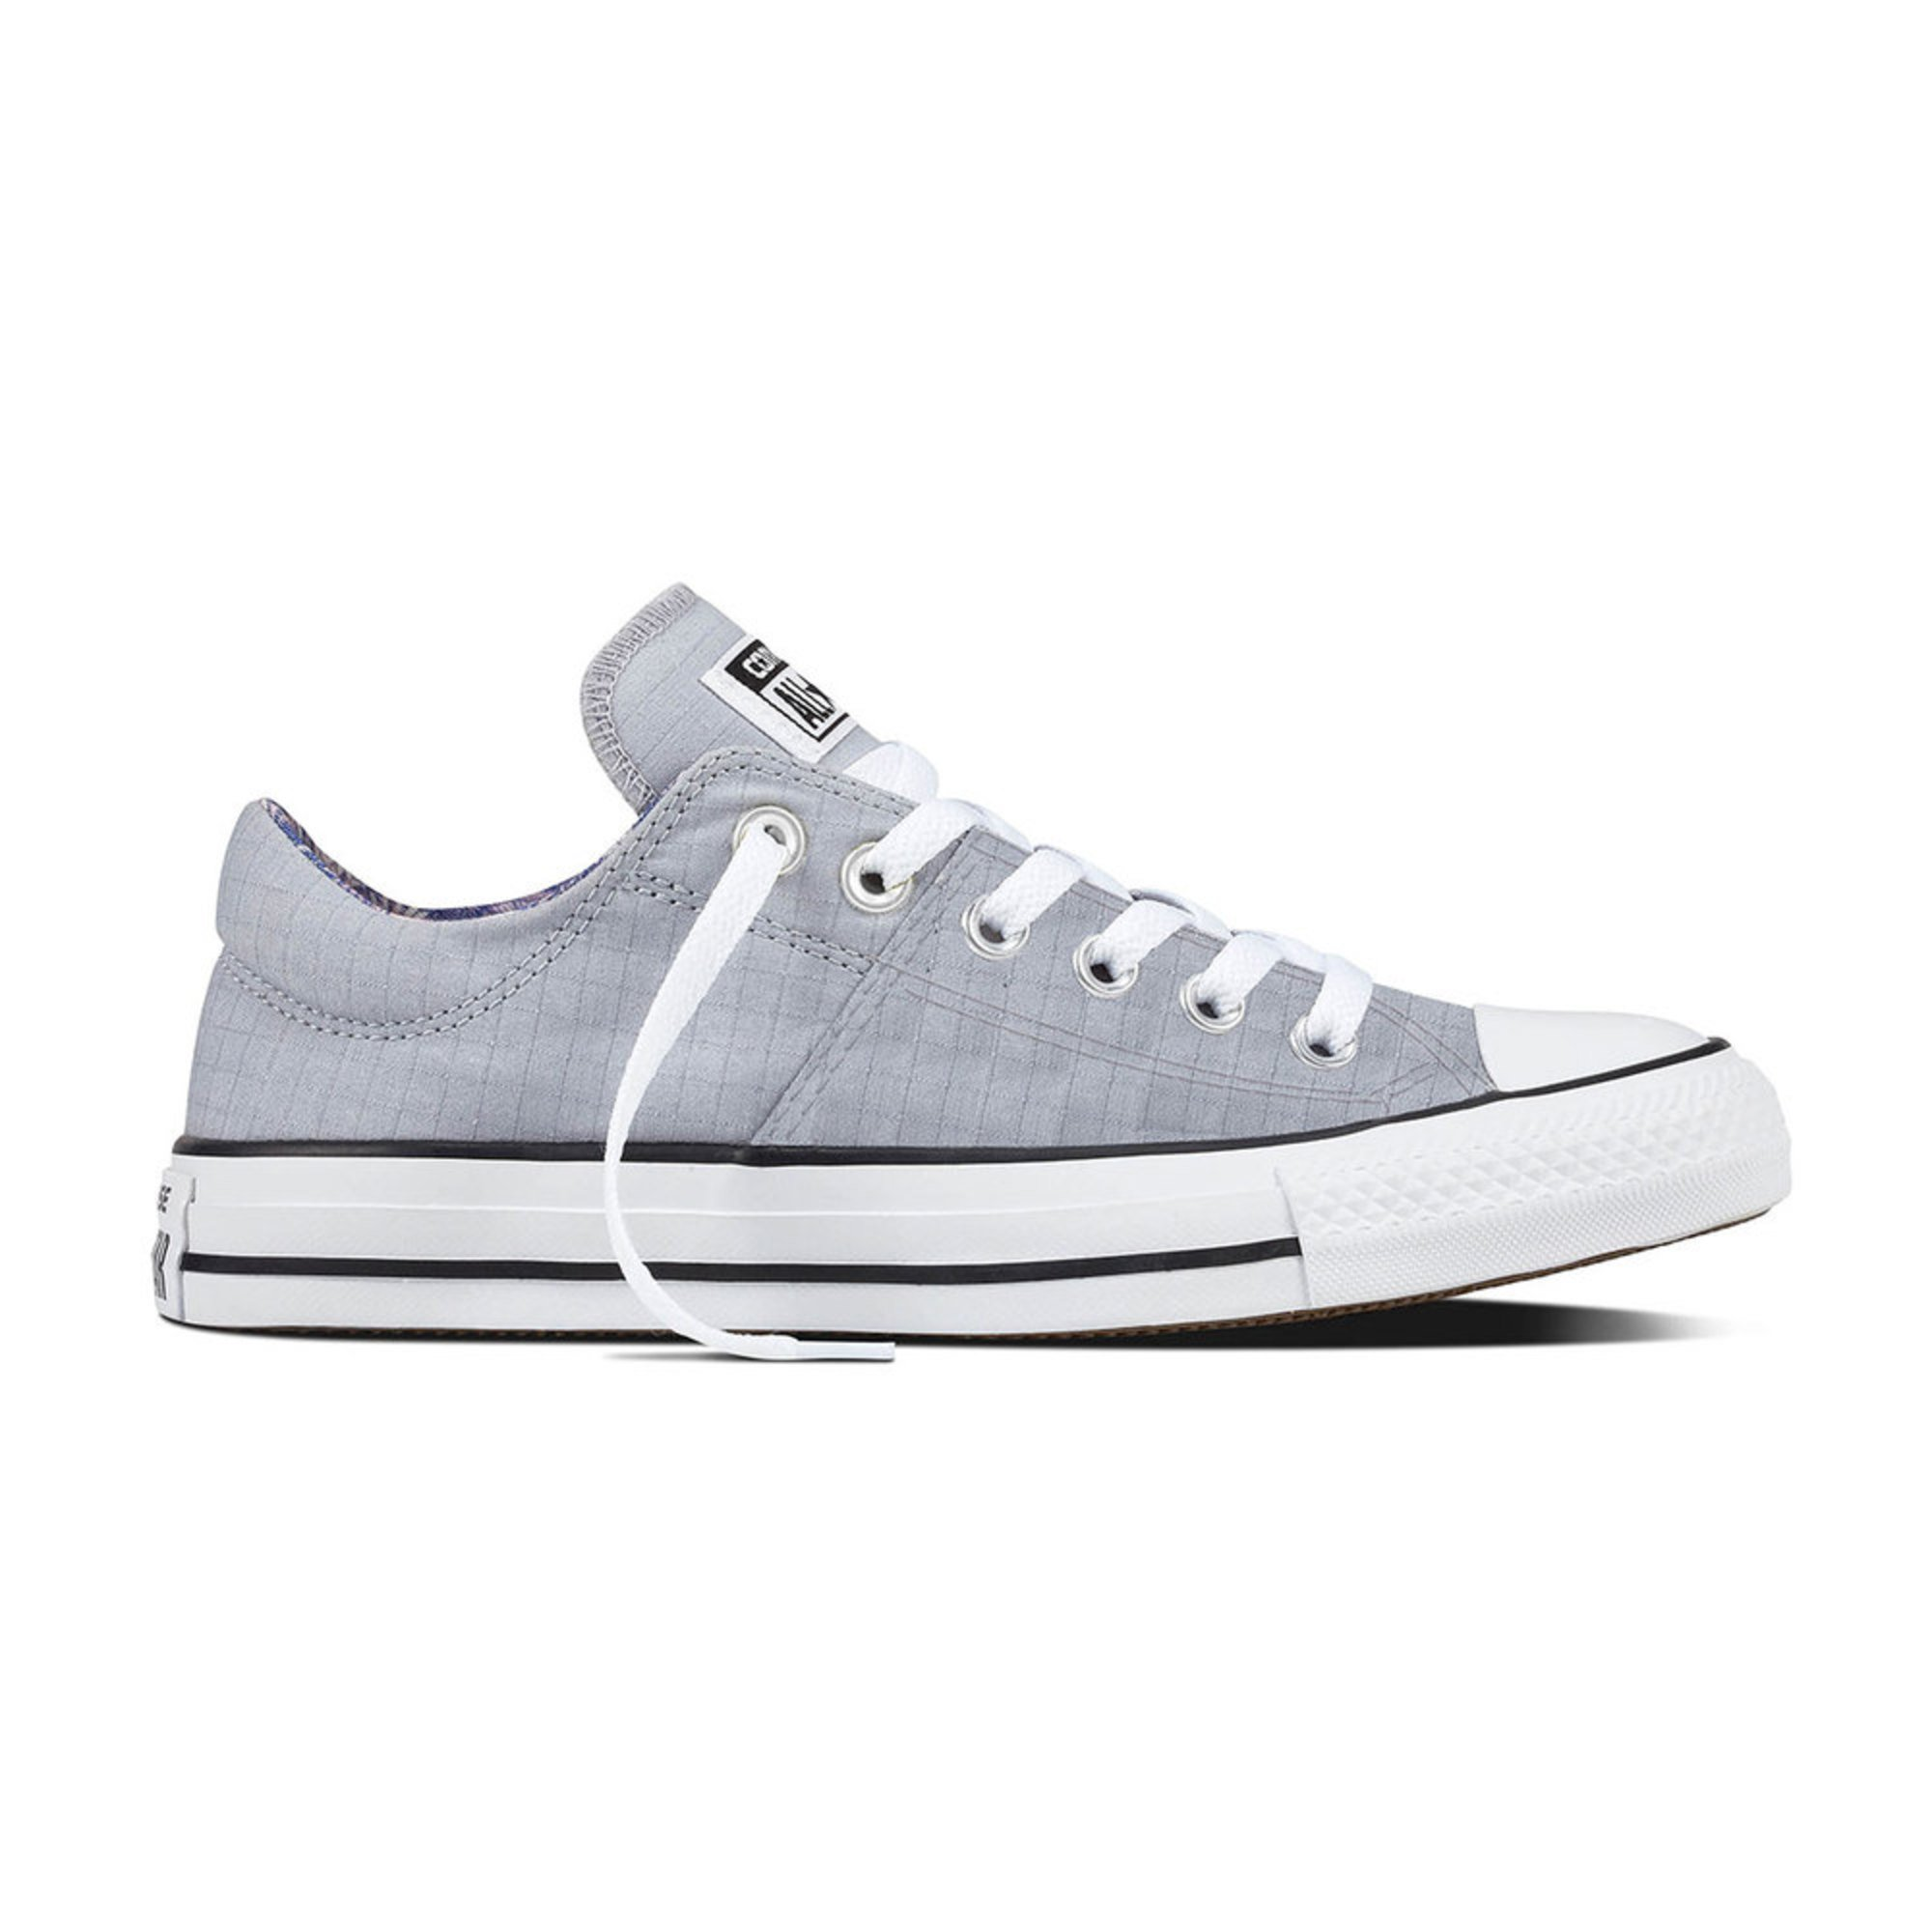 Converse Women s Chuck Taylor All Star Madison Low Top Sneaker ... 72c619b9b